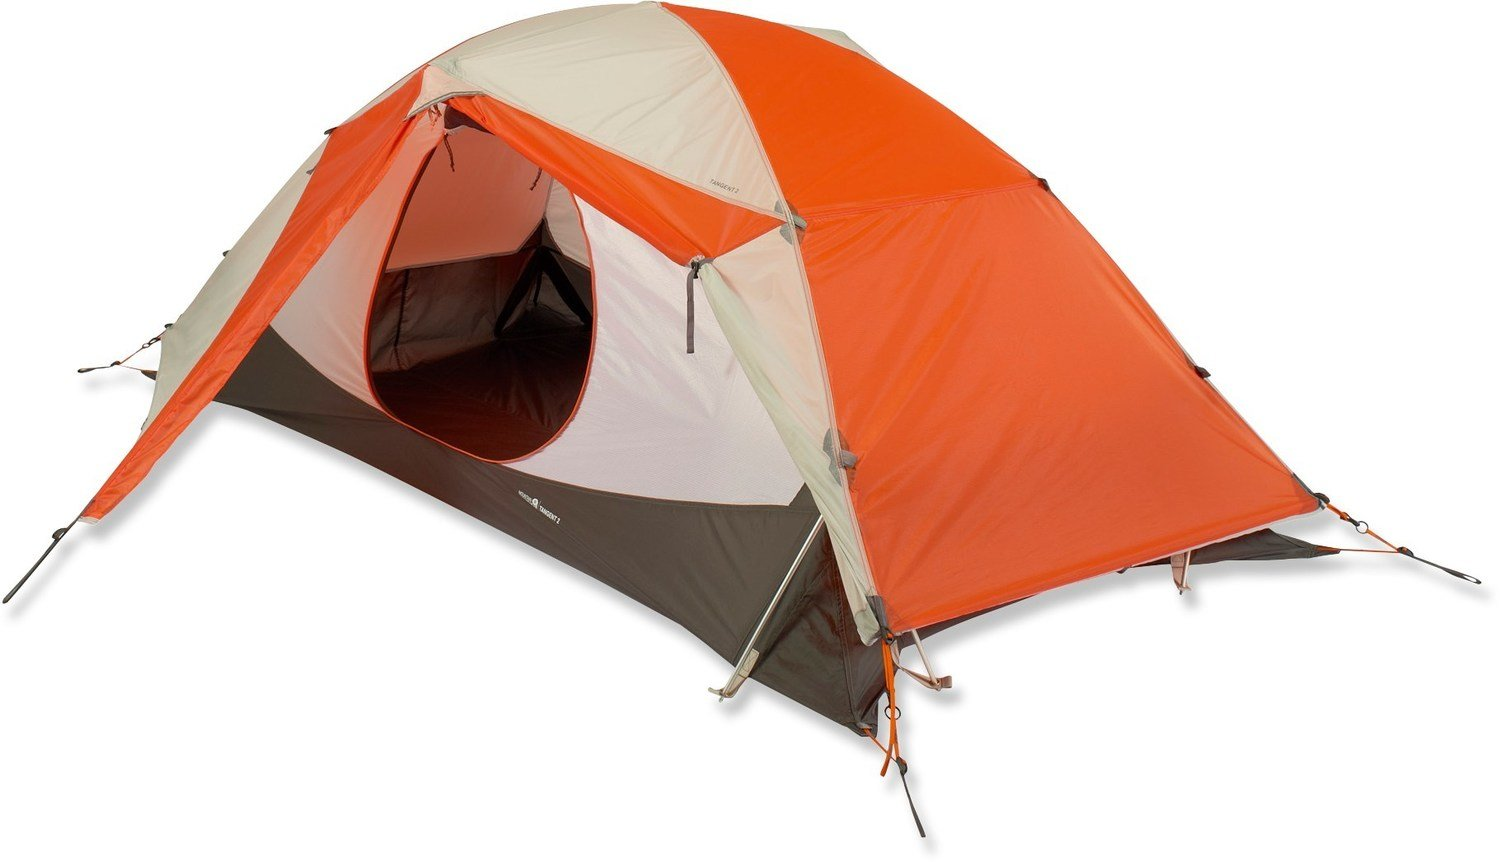 Mountain Hardwear Tangent 2 Person, 4 Season Backpacking Tent